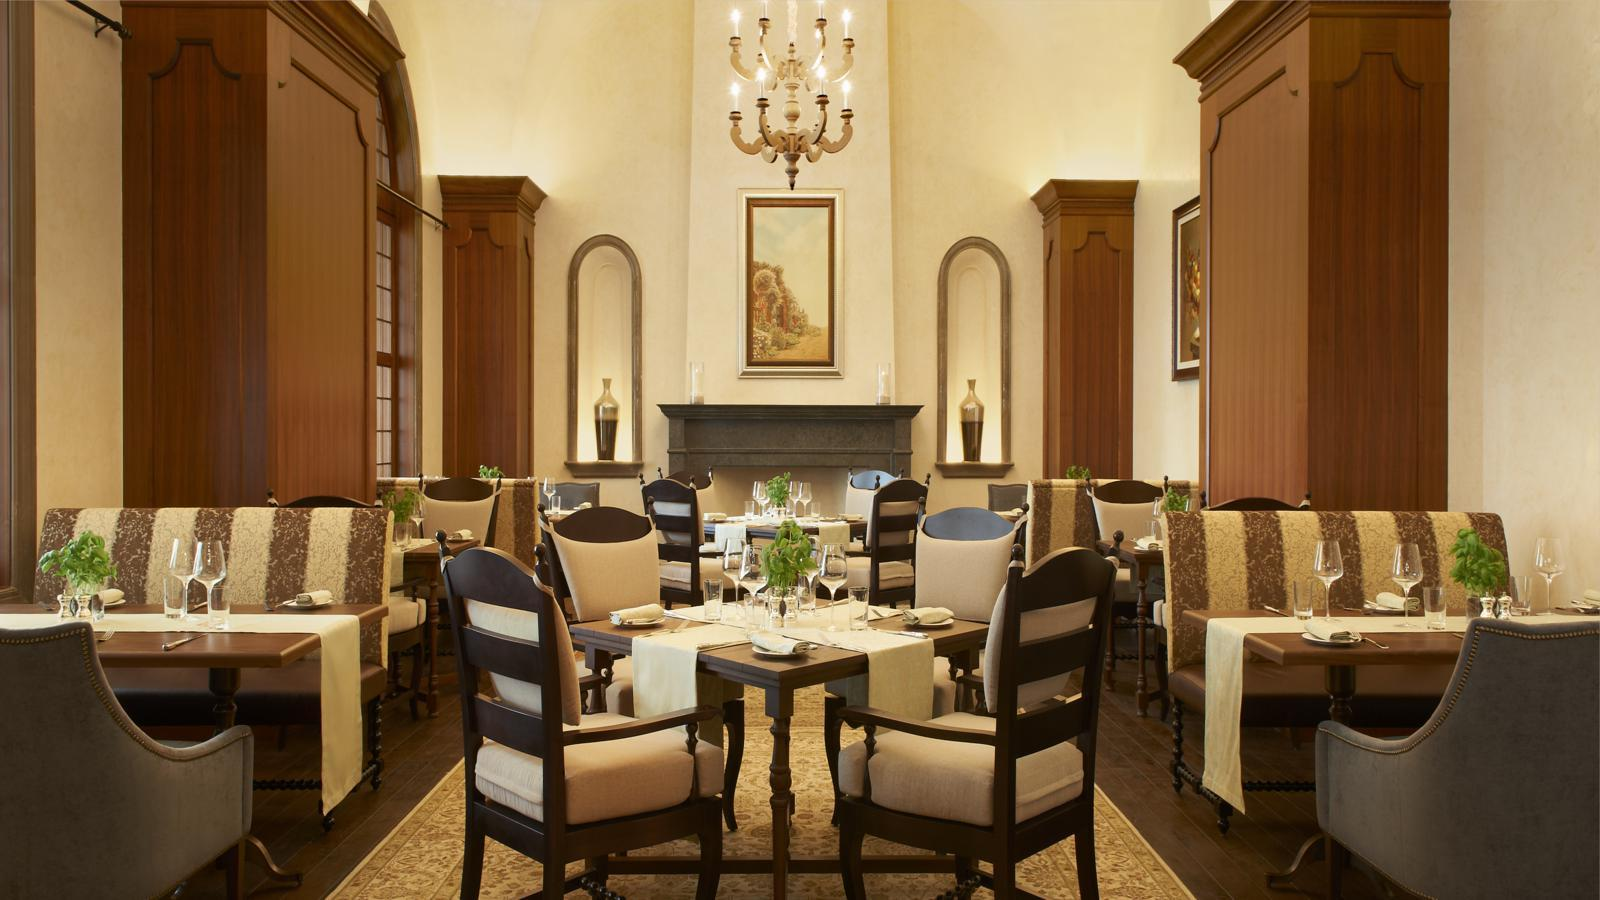 Villa Toscana at The St. Regis Abu Dhabi - Dubai